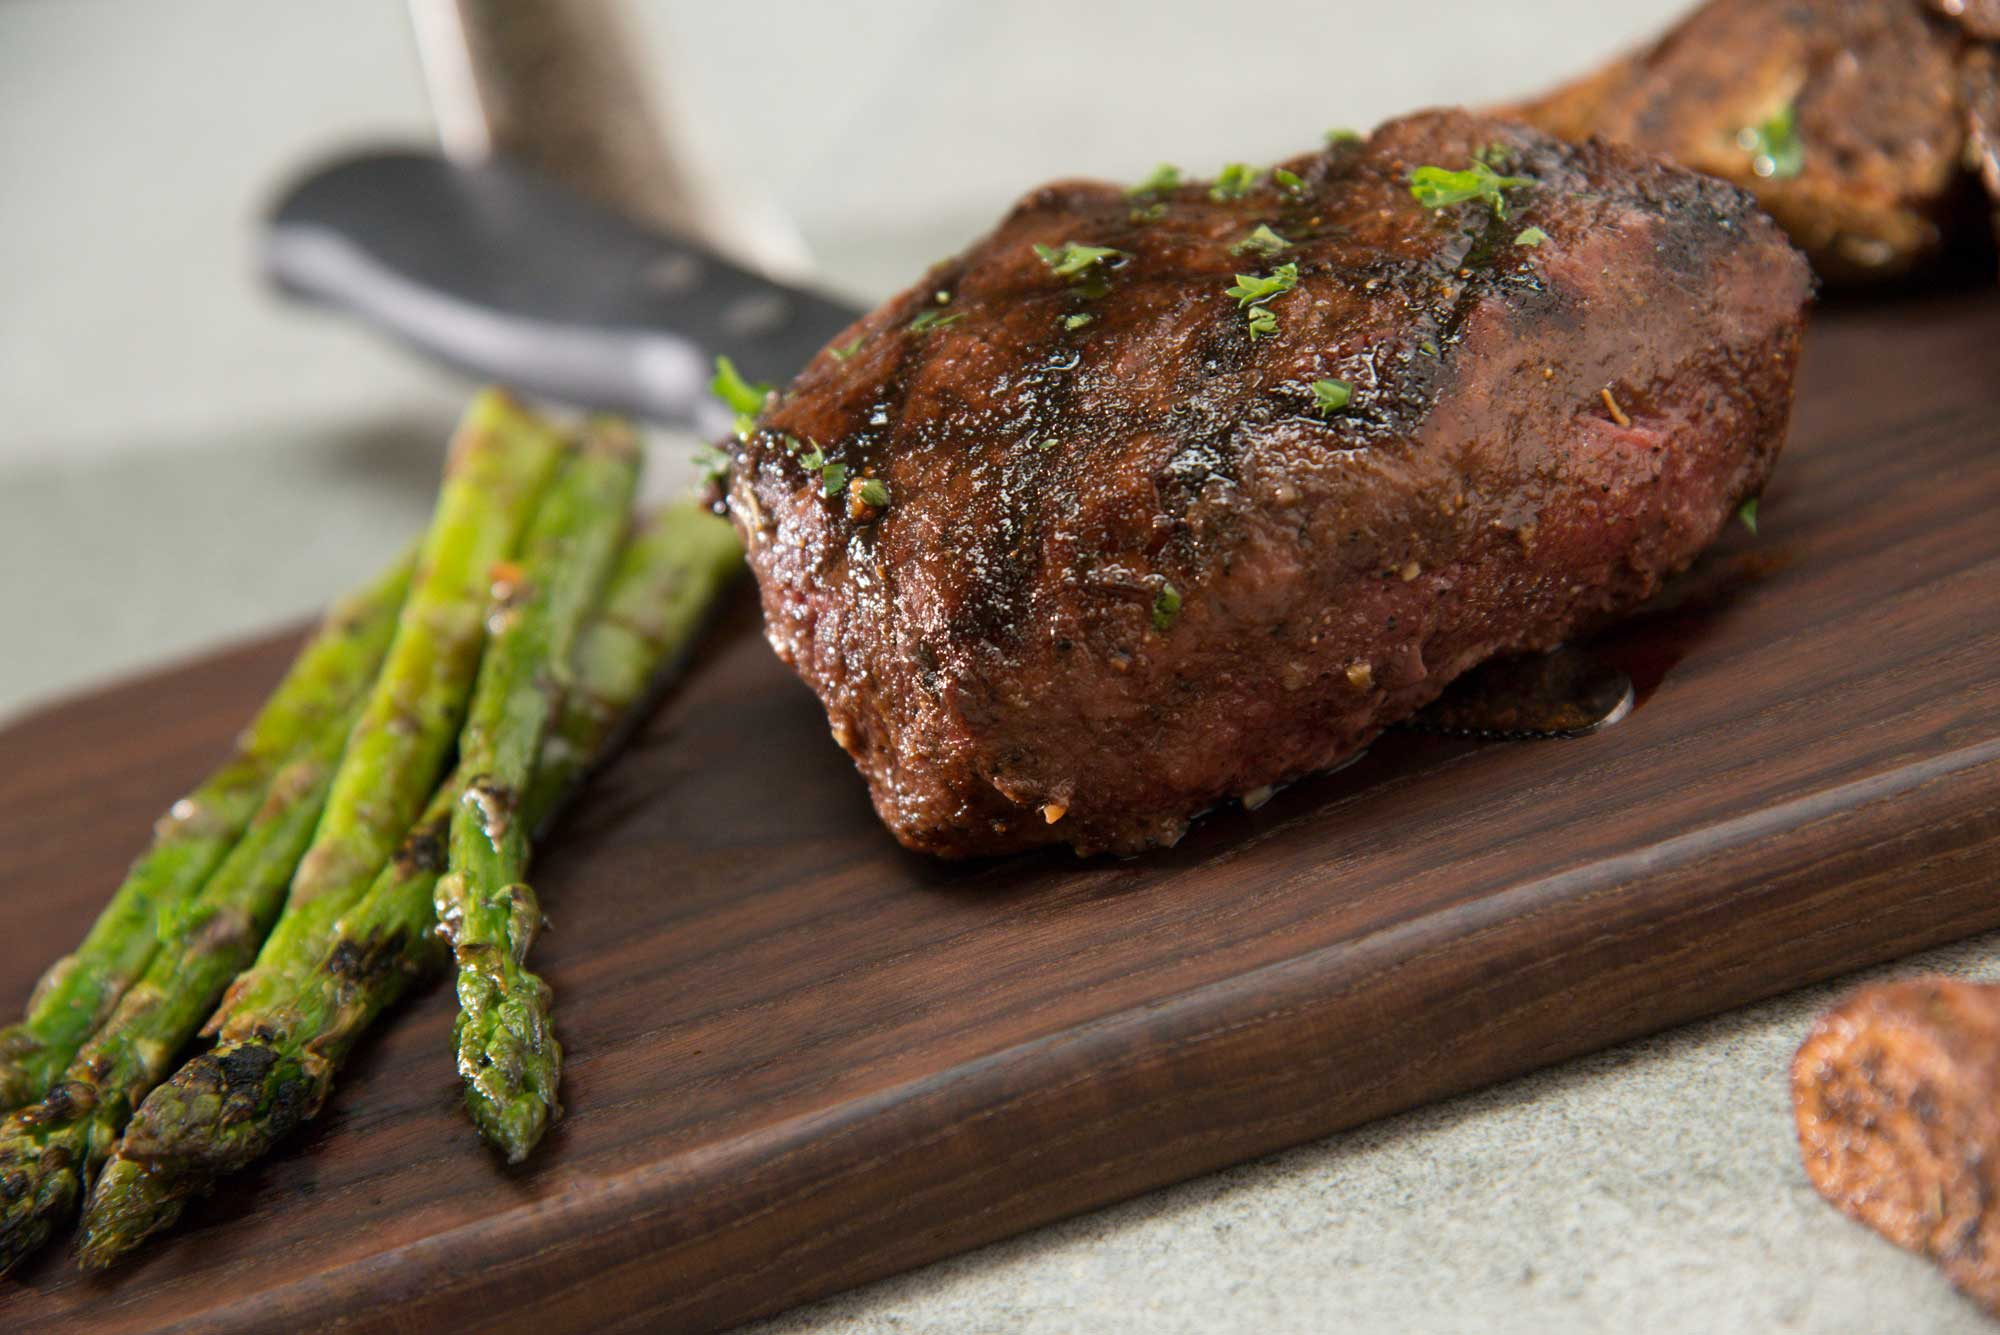 Steakhouse Sirloin with asparagus